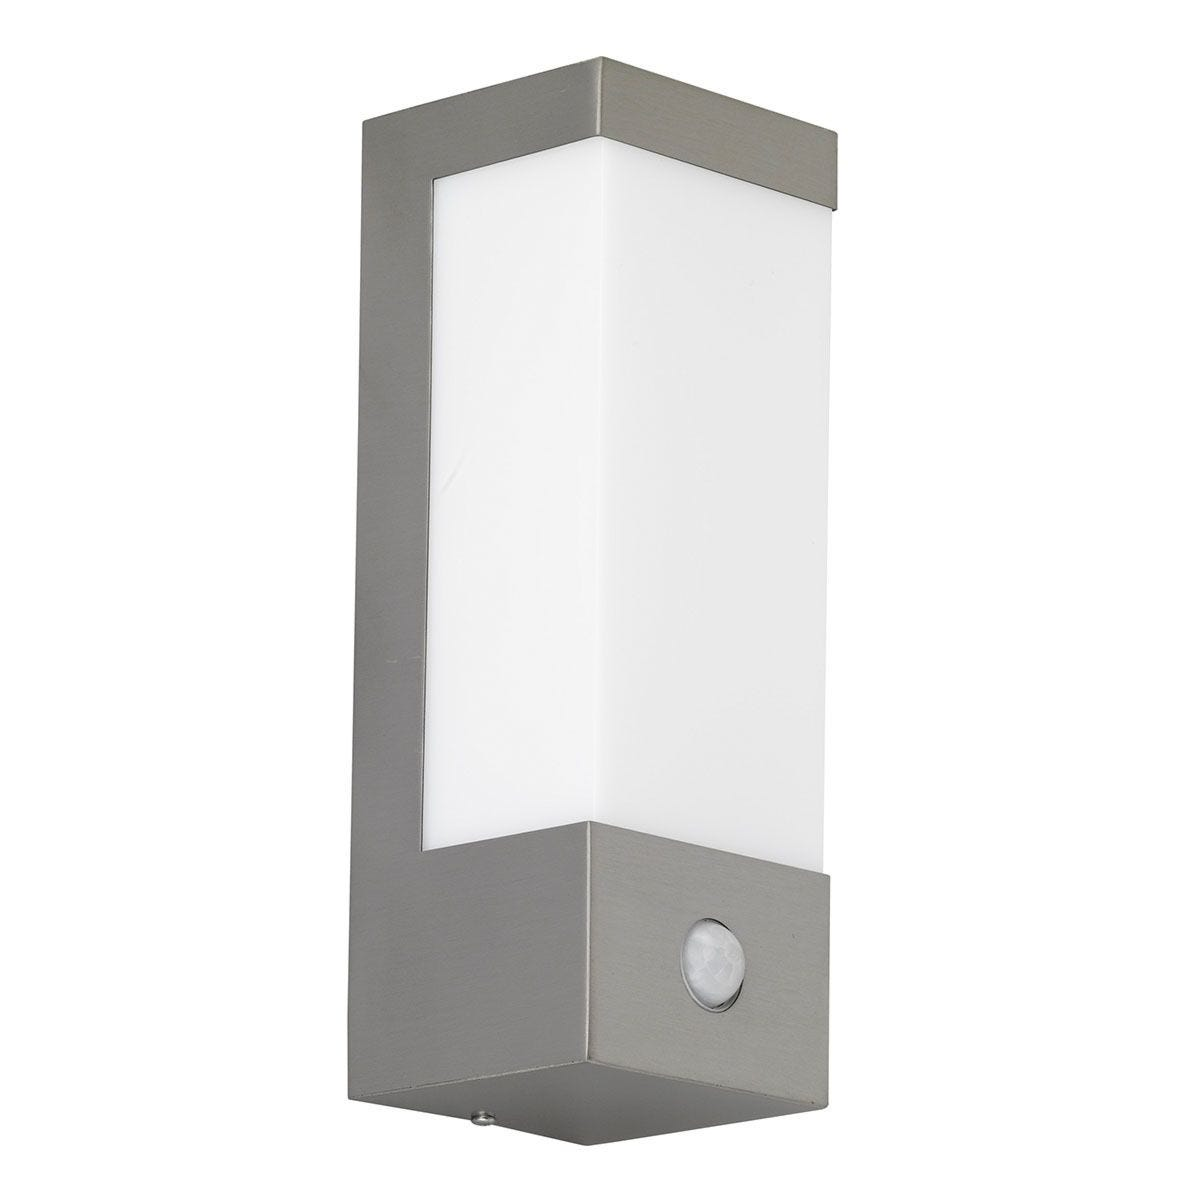 Wofi Vir LED Wall Lamp - Brushed Stainless Steel